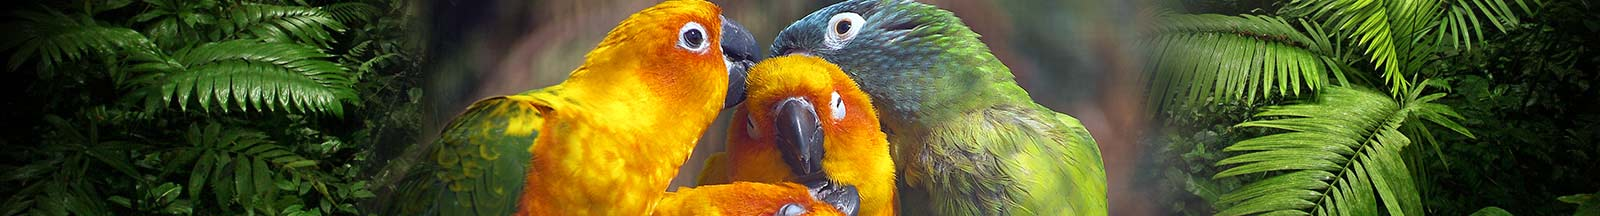 The National Parrot Sanctuary | Lincolnshire Wildlife Park